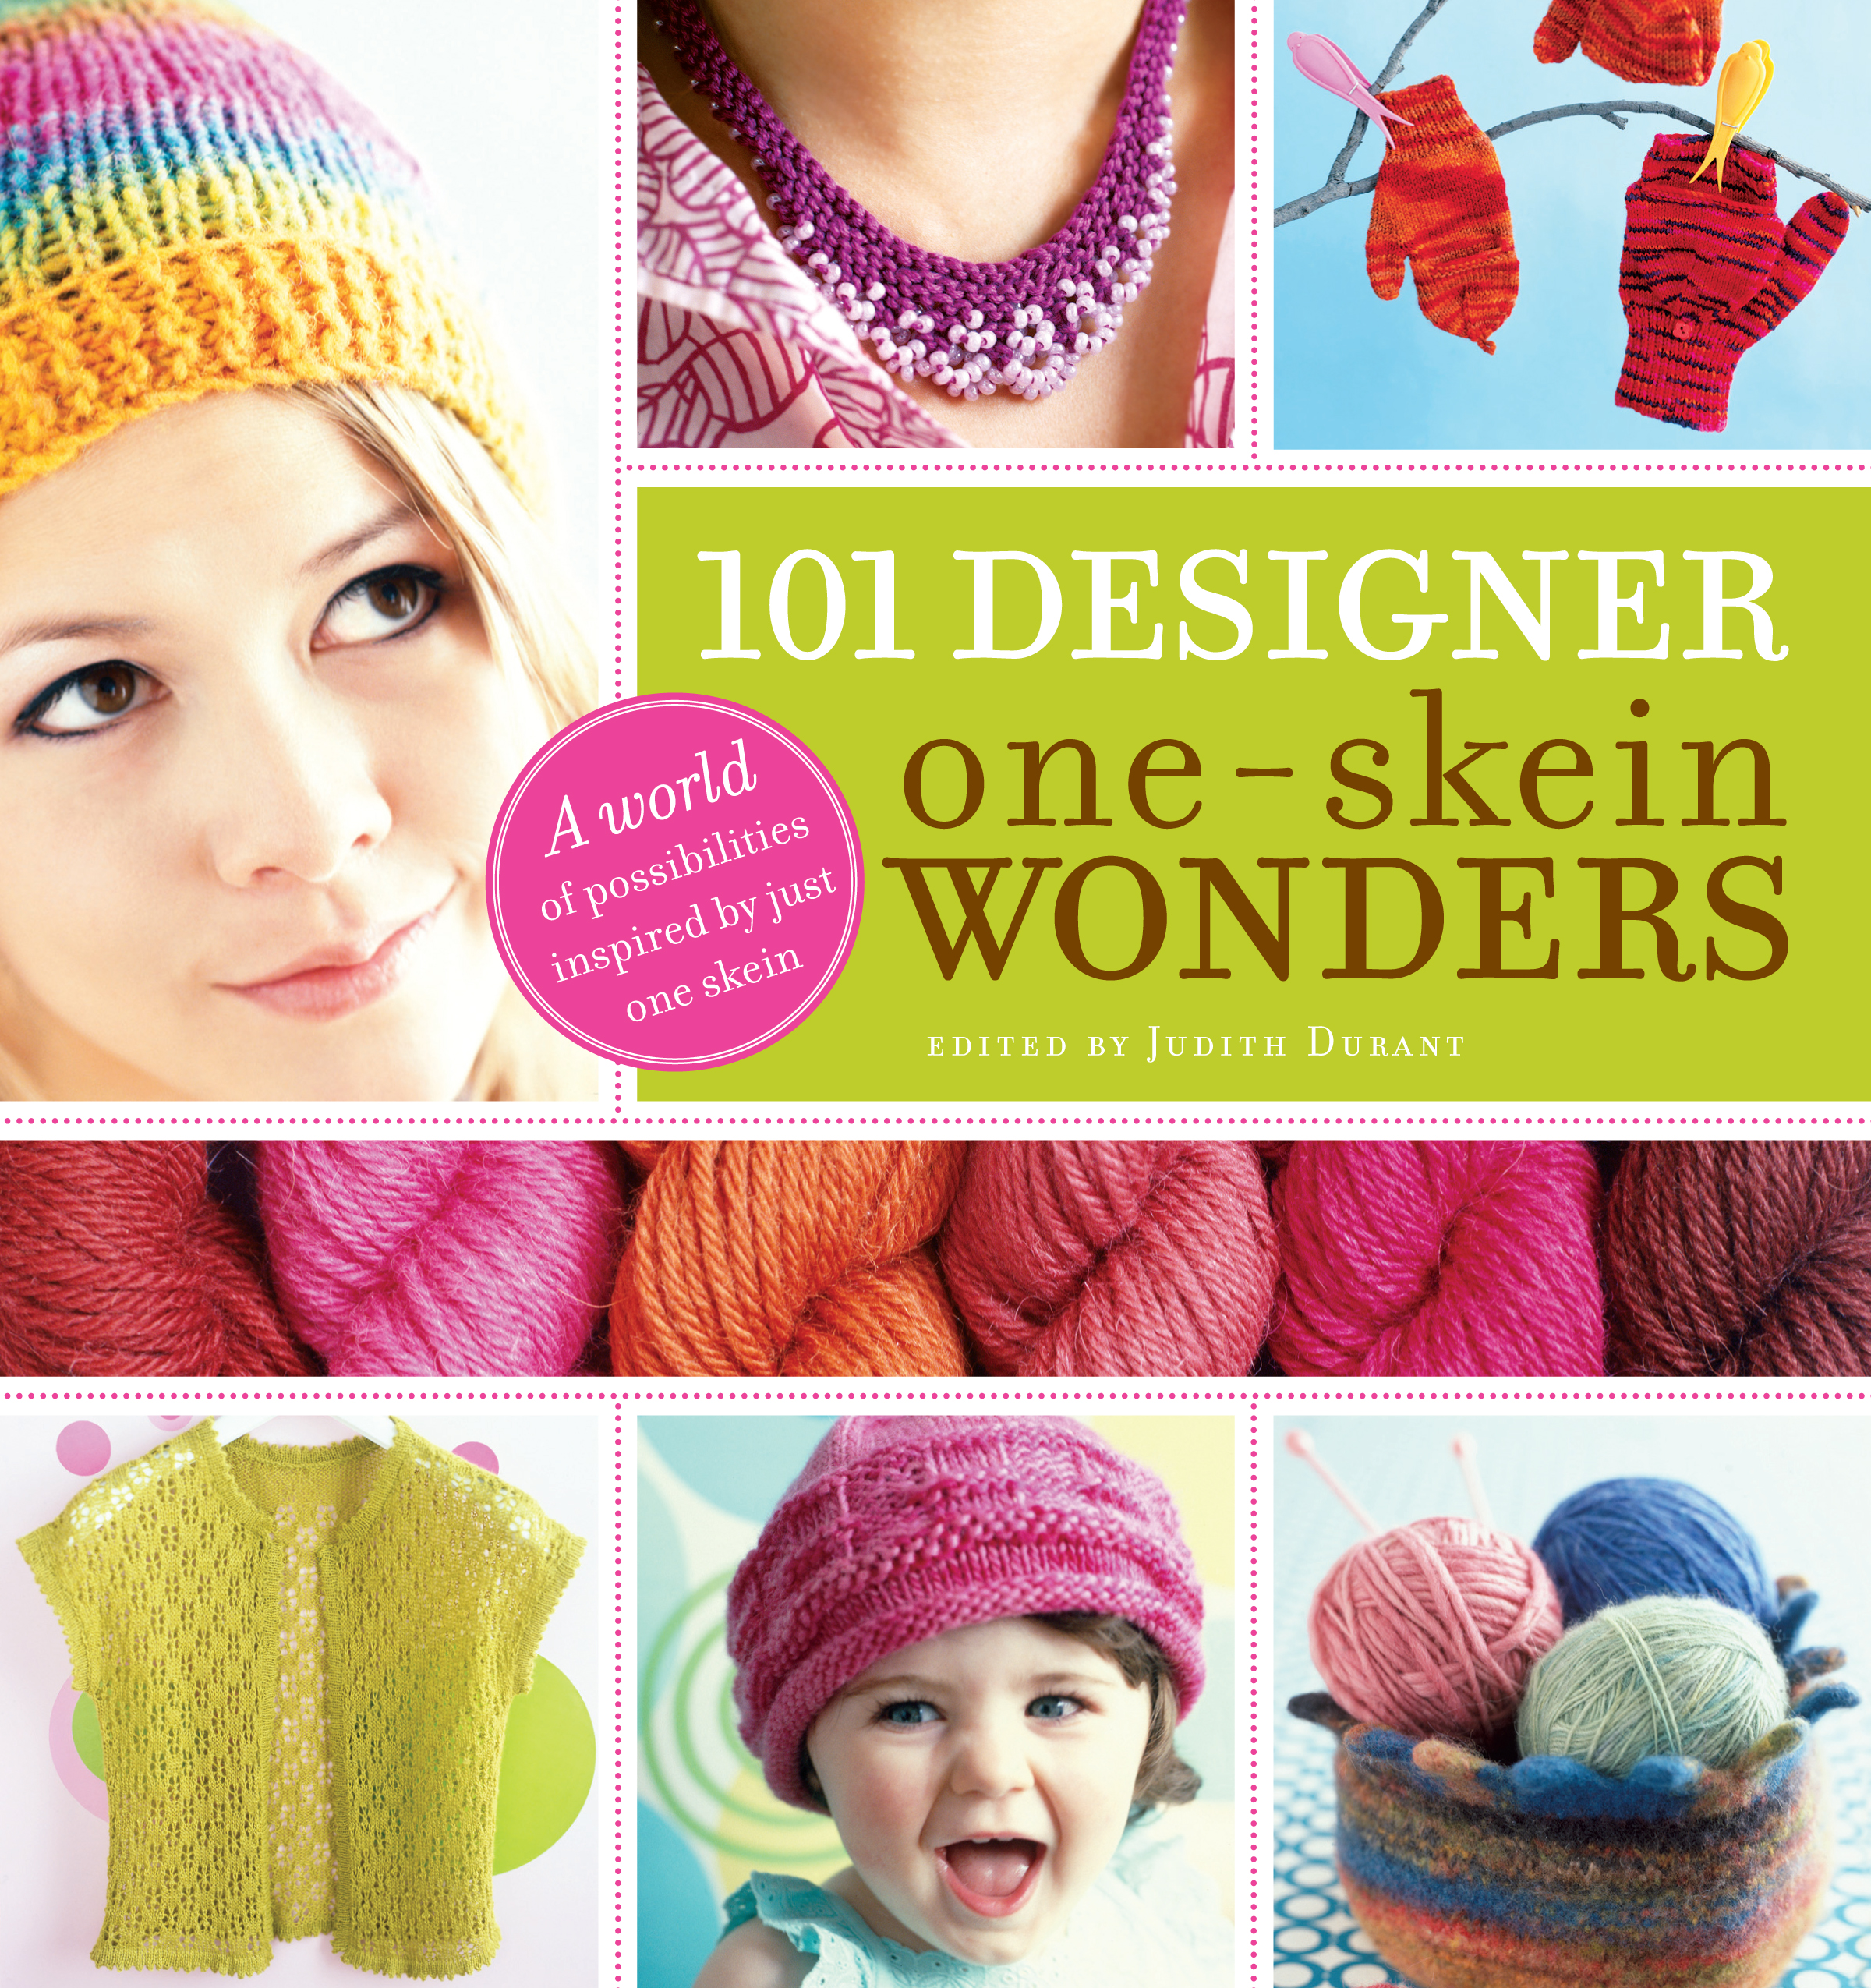 101 Designer One-Skein Wonders<sup>®</sup> A World of Possibilities Inspired by Just One Skein - Judith Durant